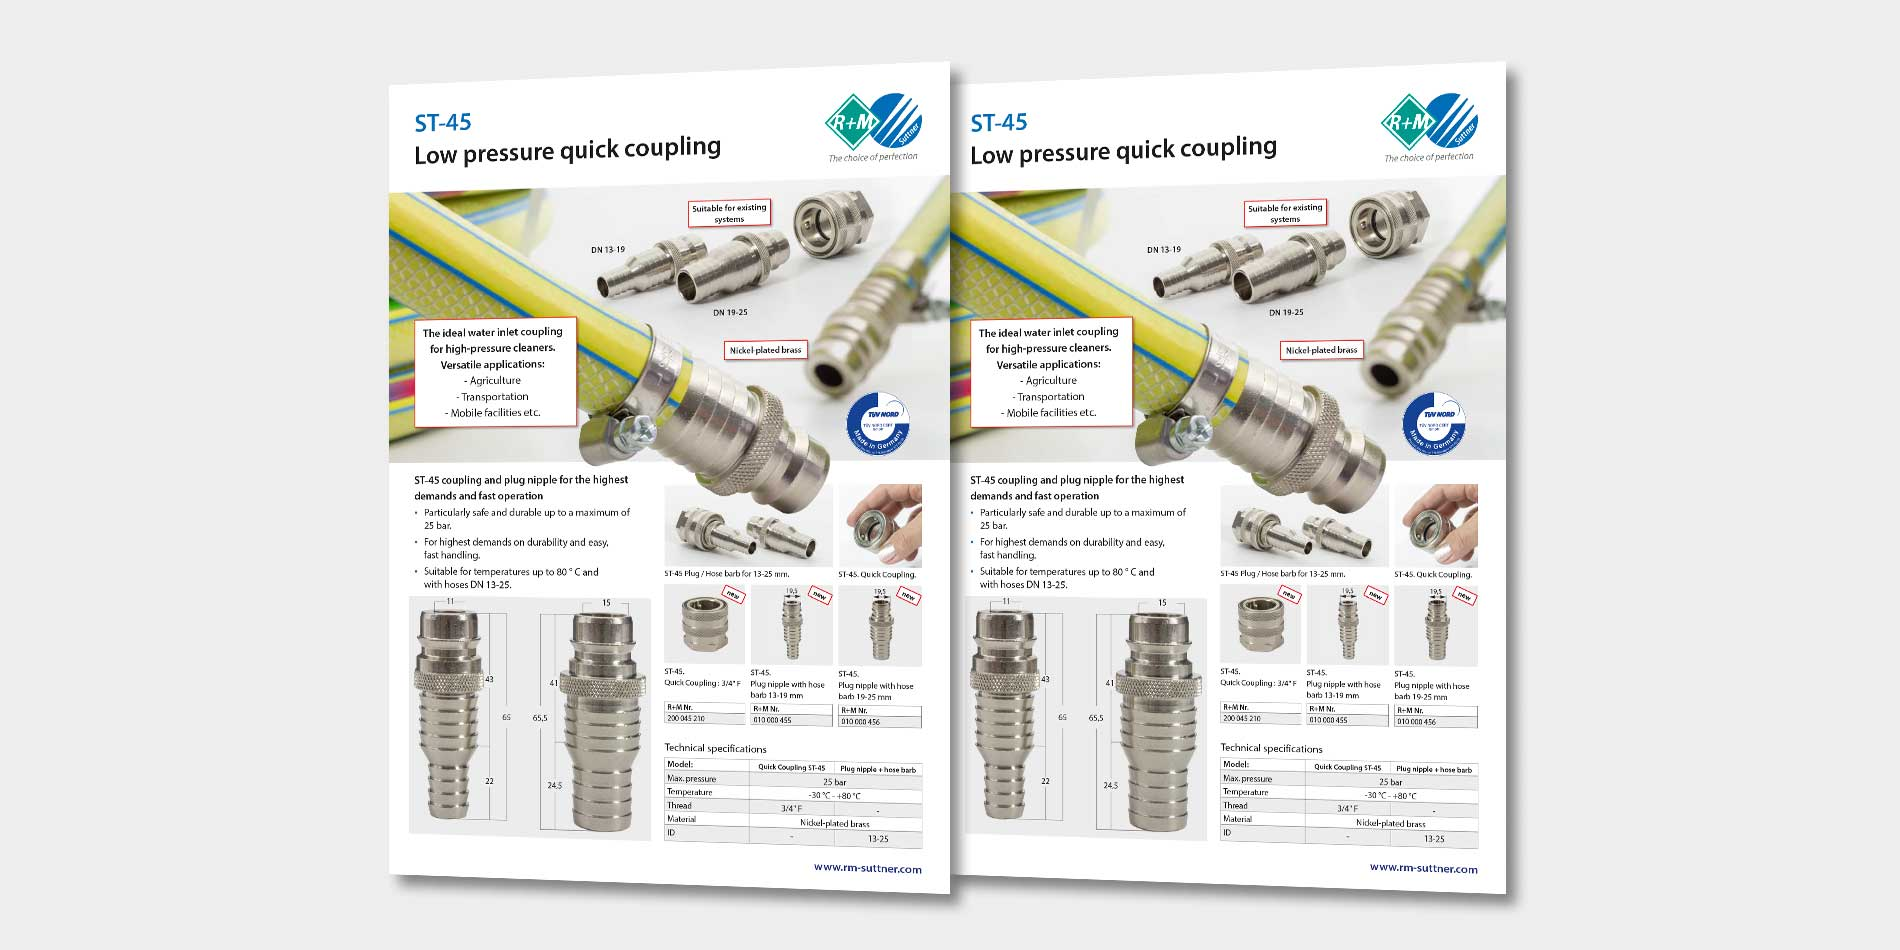 Low pressure quick coupling ST-45